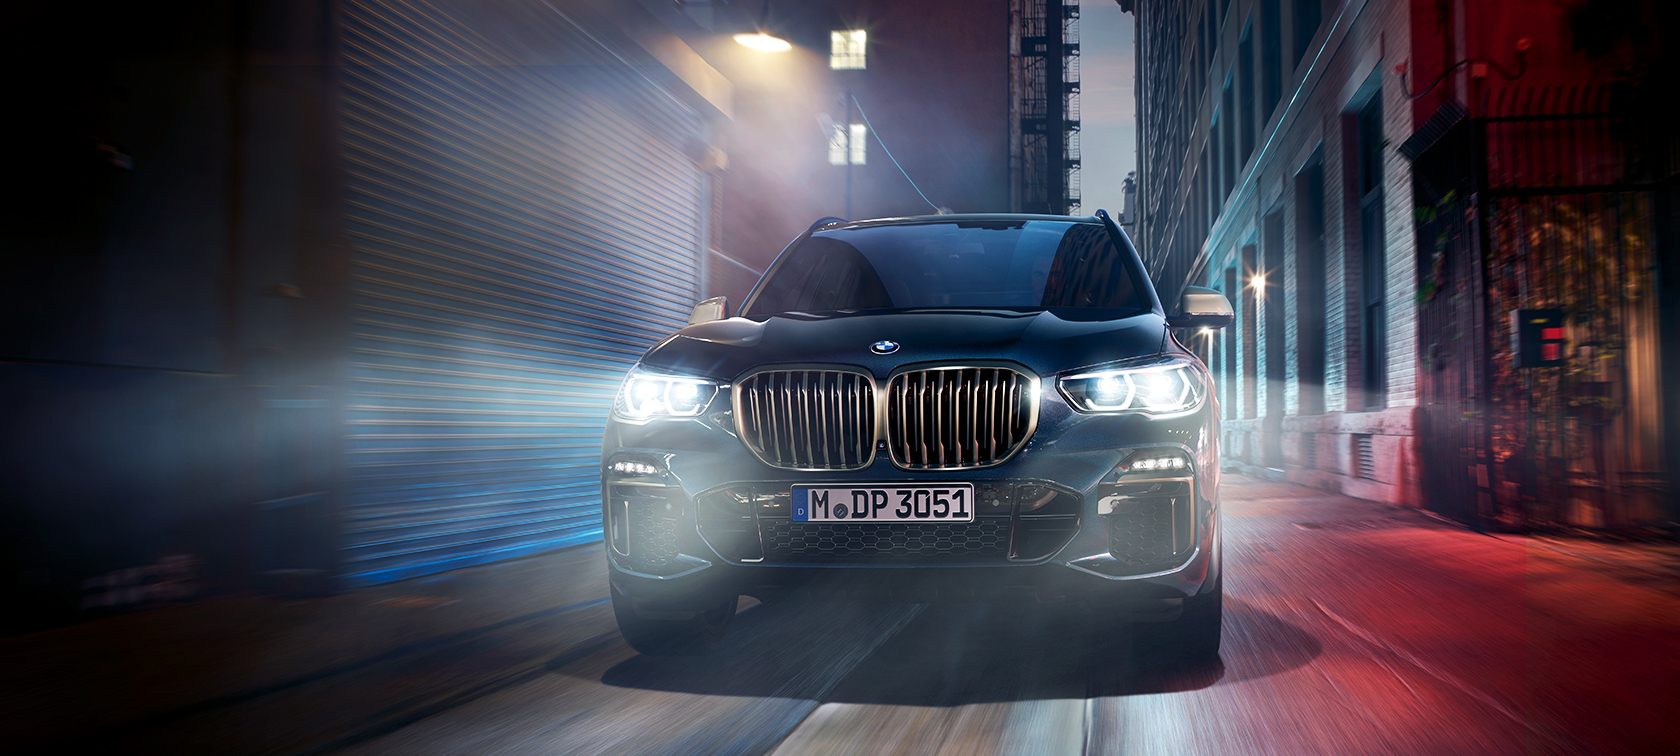 The BMW X5 M50d on a street in the city at night